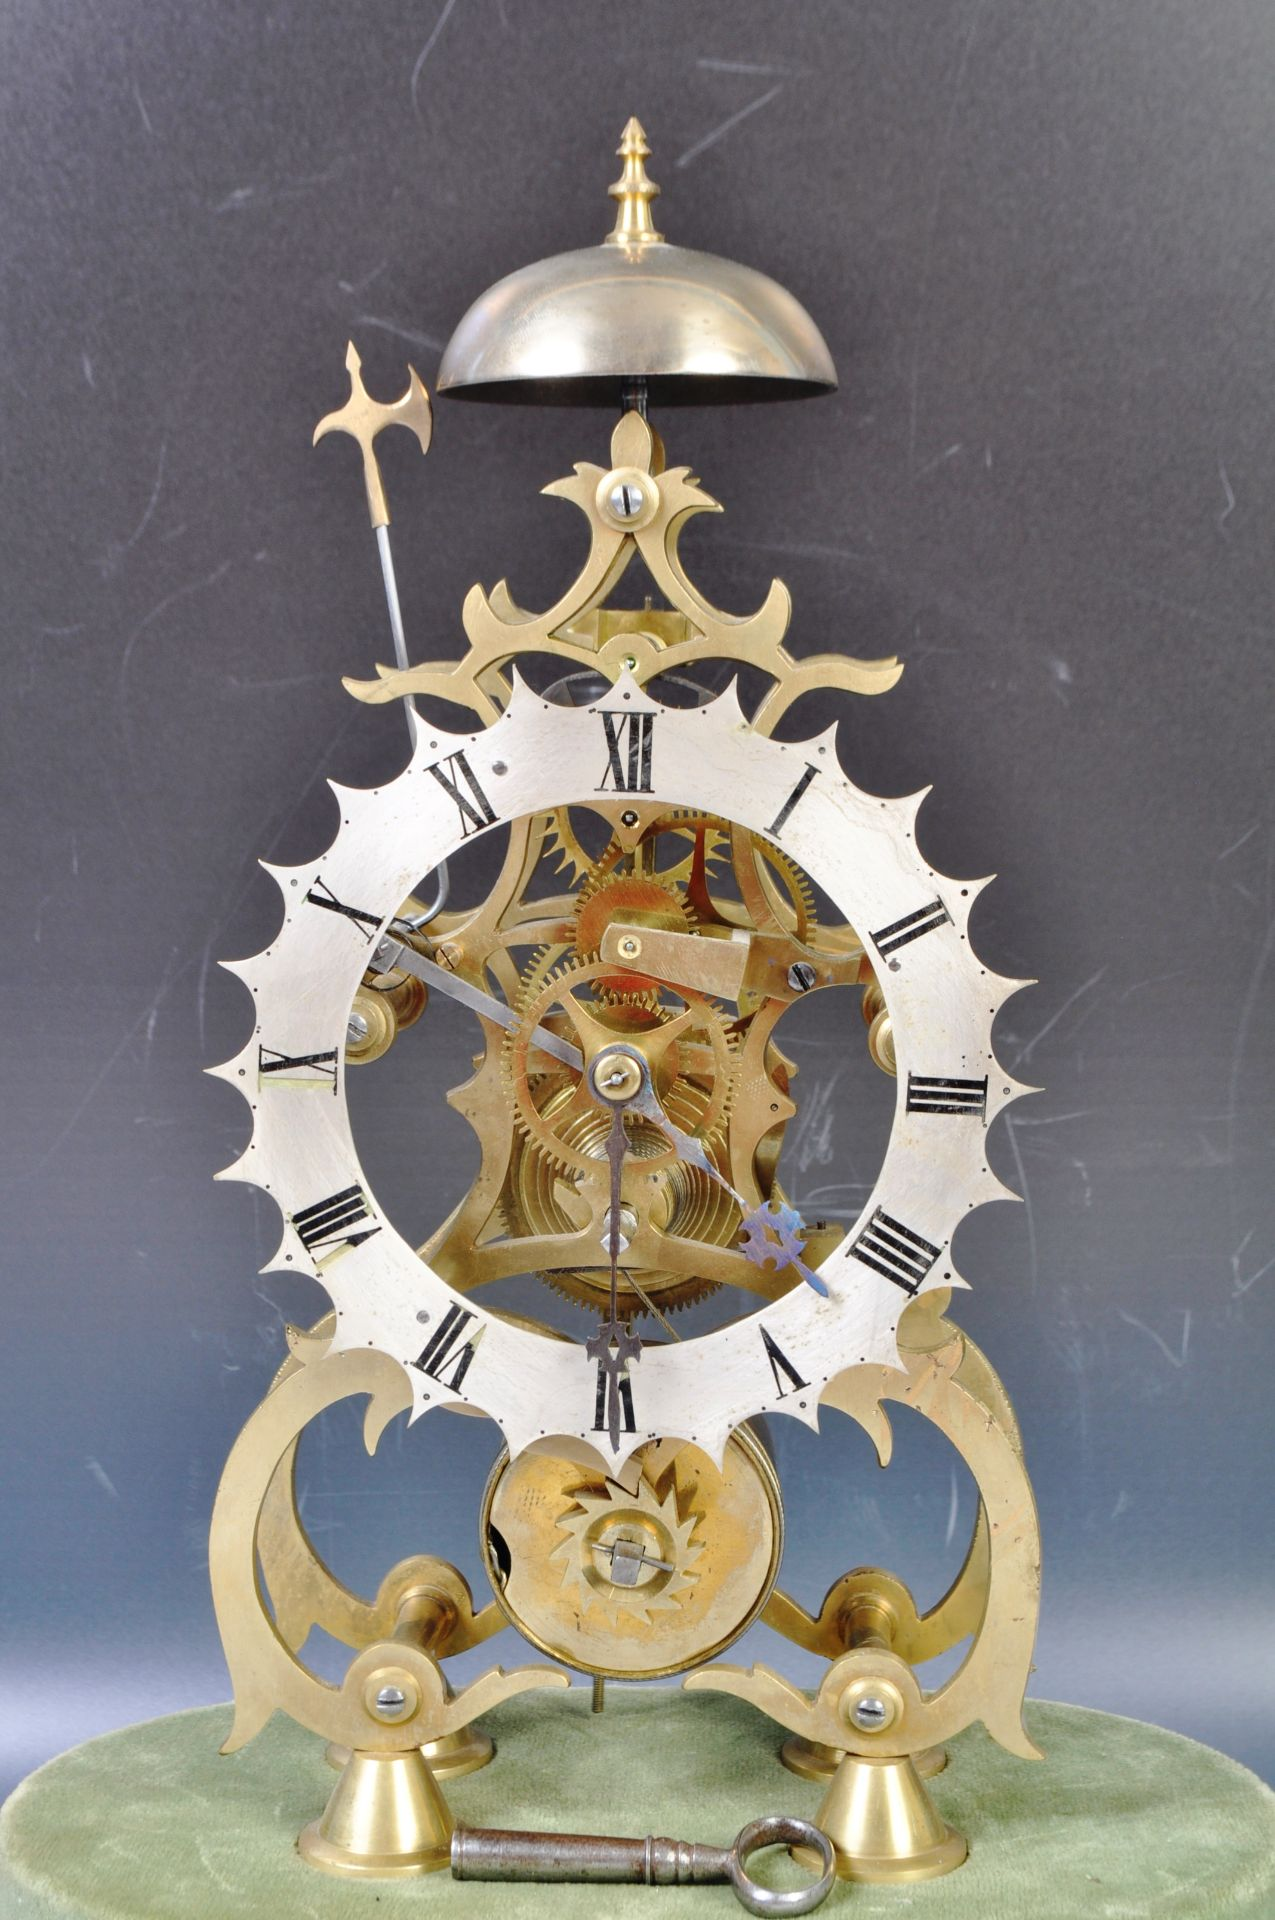 ANTIQUE MID 19TH CENTURY GOTHIC BRASS SKELETON CLOCK IN GLASS DOME - Image 3 of 13